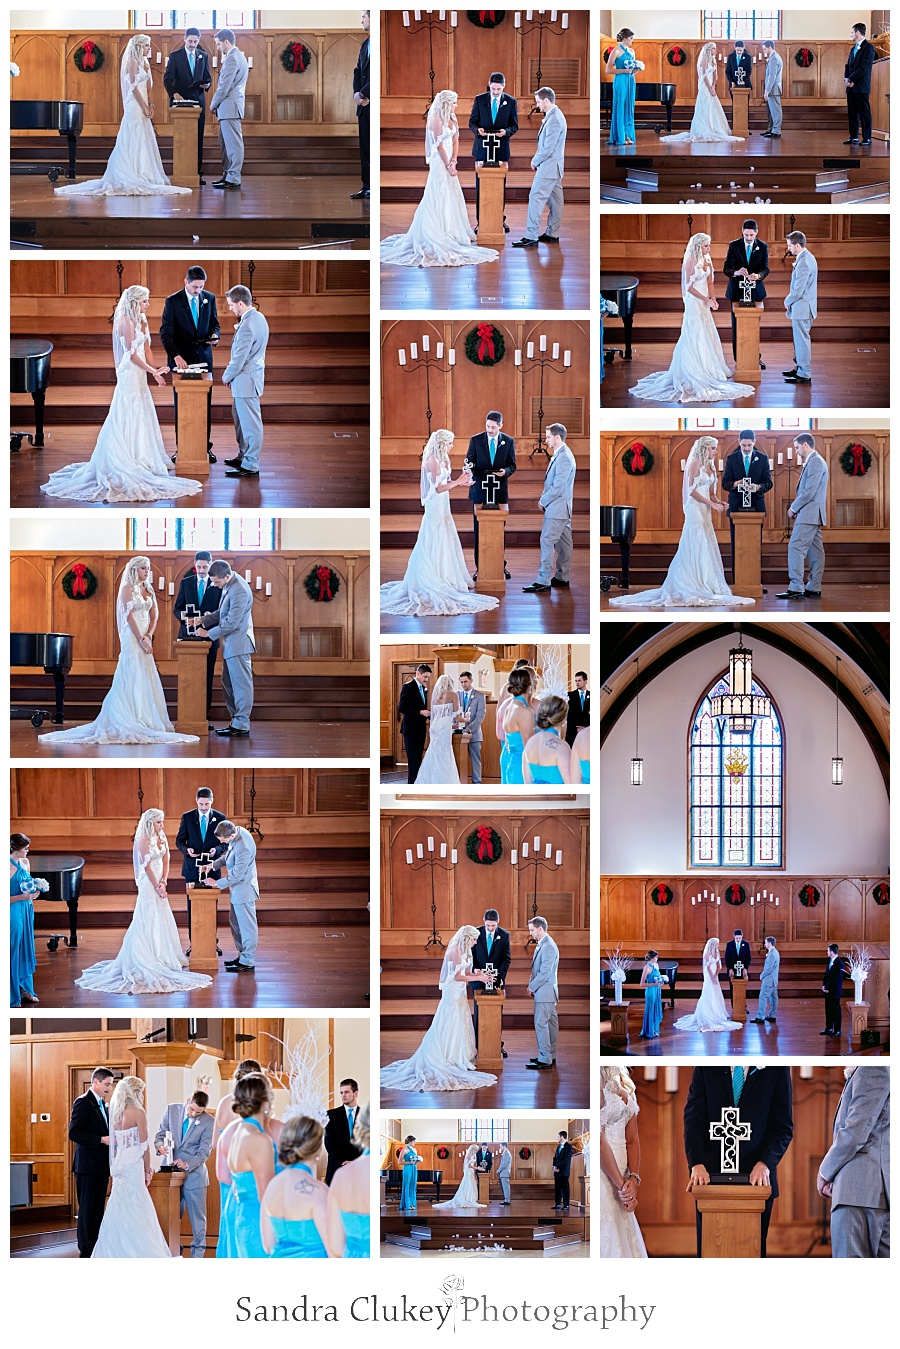 Wedding Ceremony at Lee University Chapel, Cleveland TN